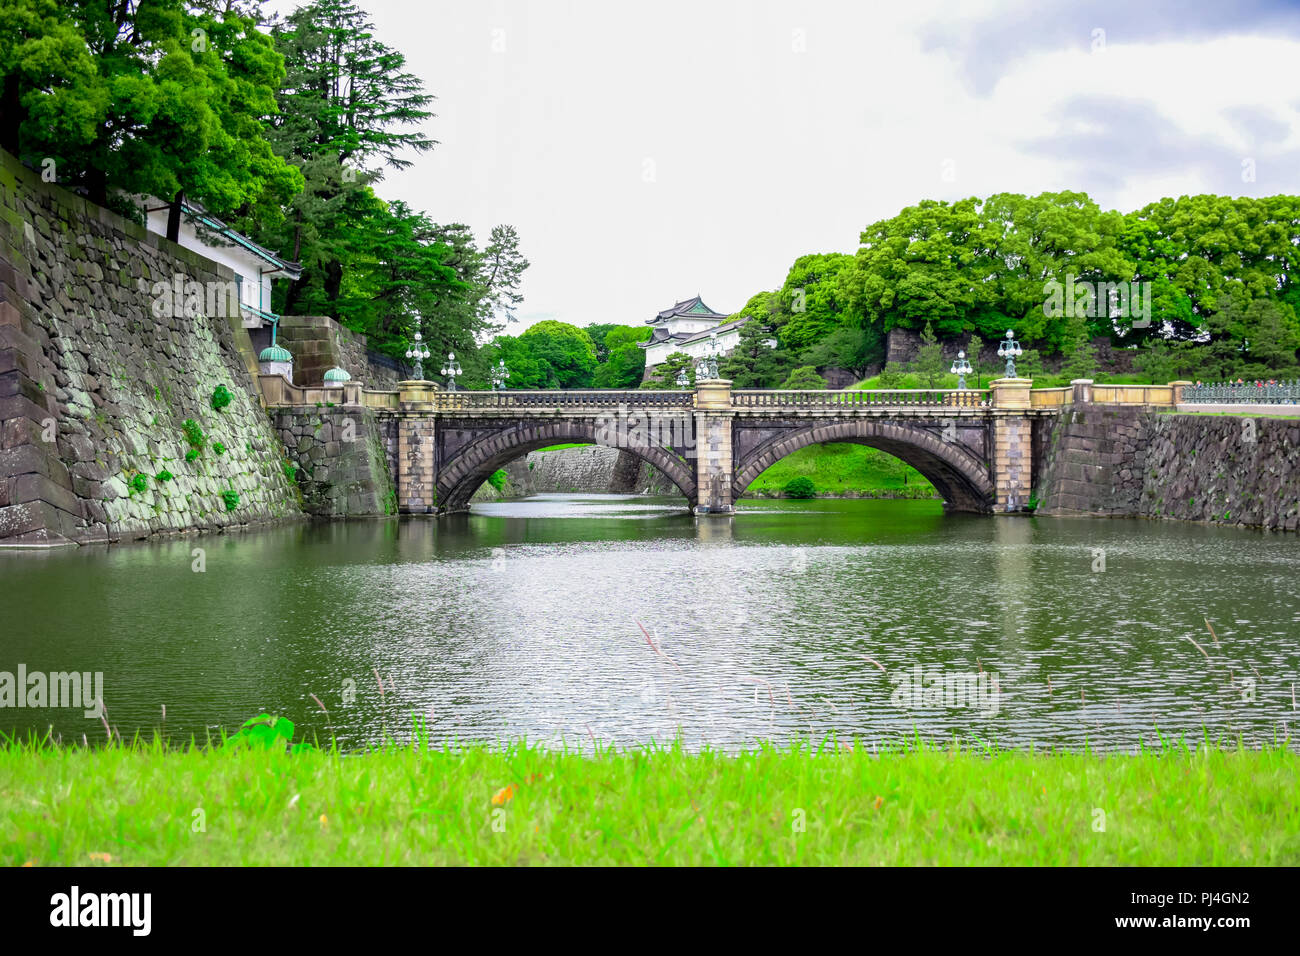 Seimon Ishibashi (Nijubashi) Bridge, the Tokyo's most famous bridge at the Imperial Palace in Tokyo, Japan - Stock Image